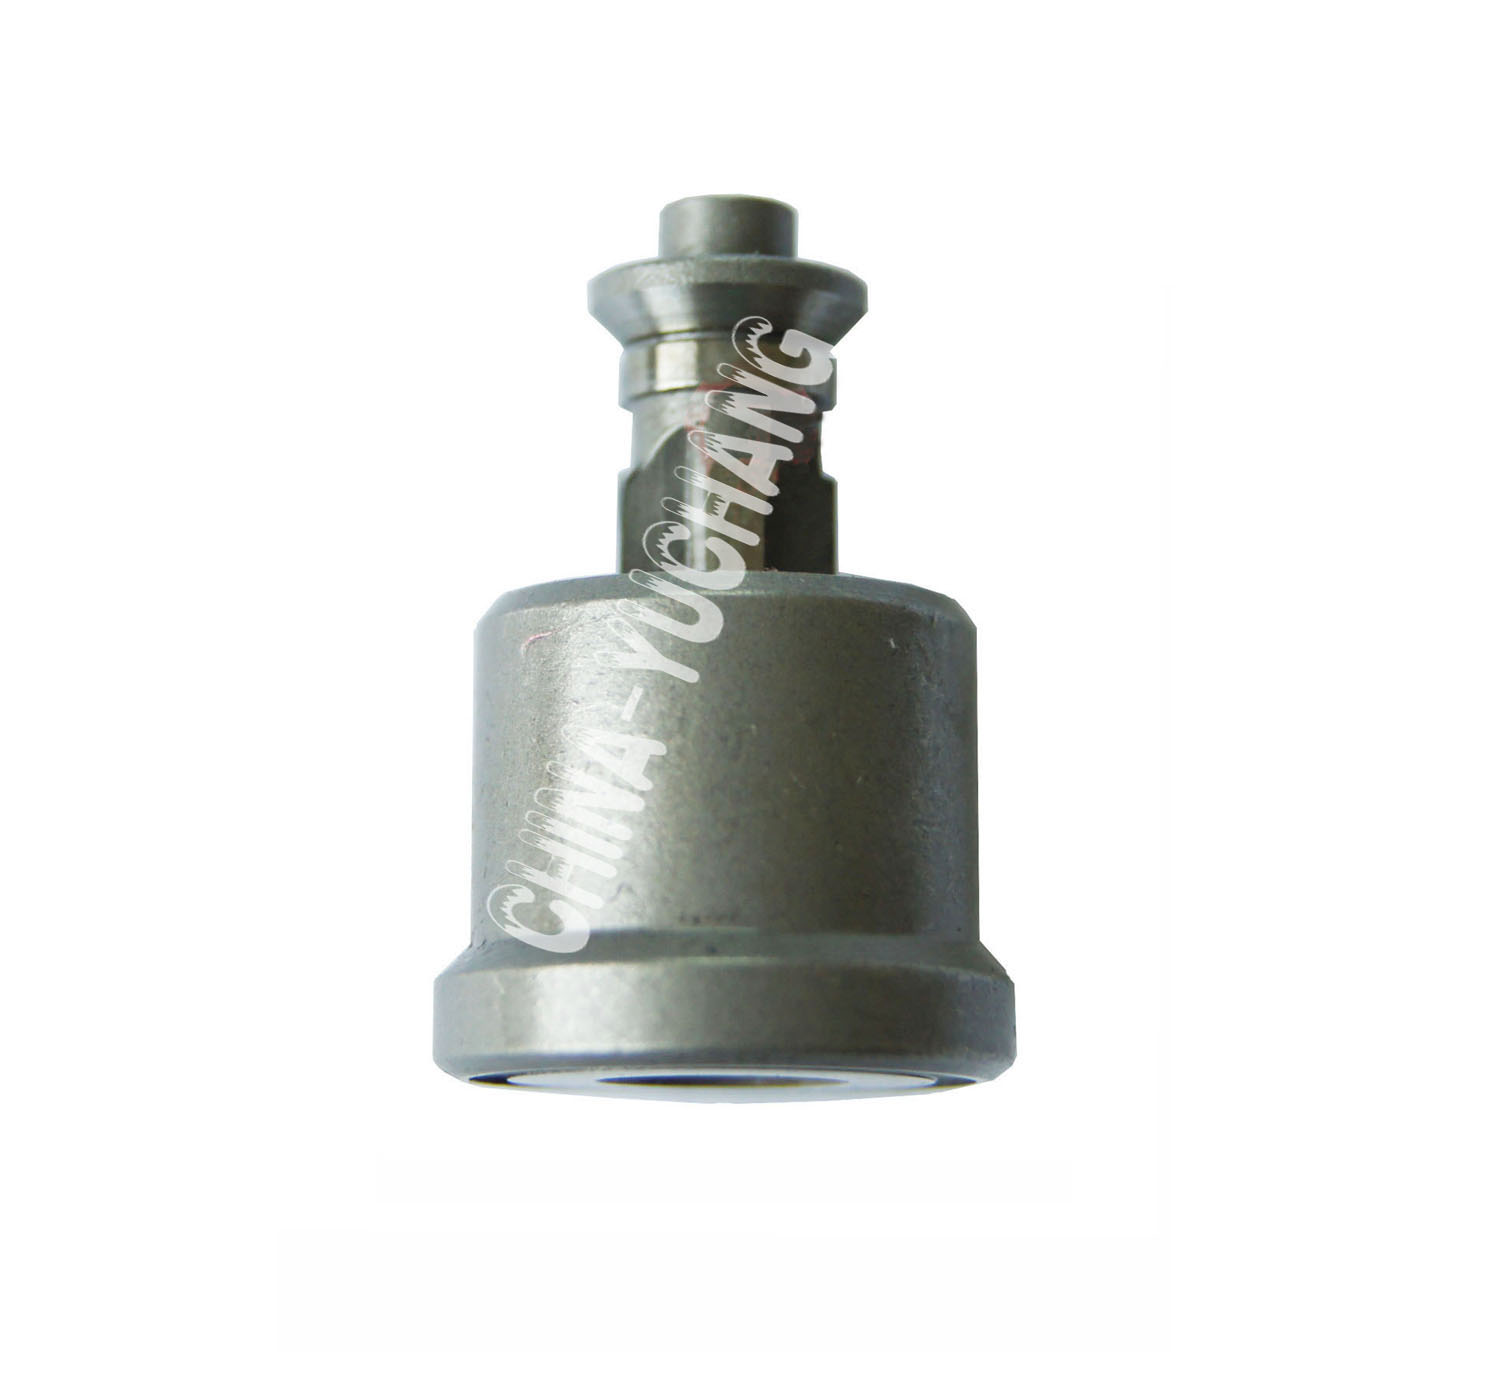 Delivery valves P84 134110-8520